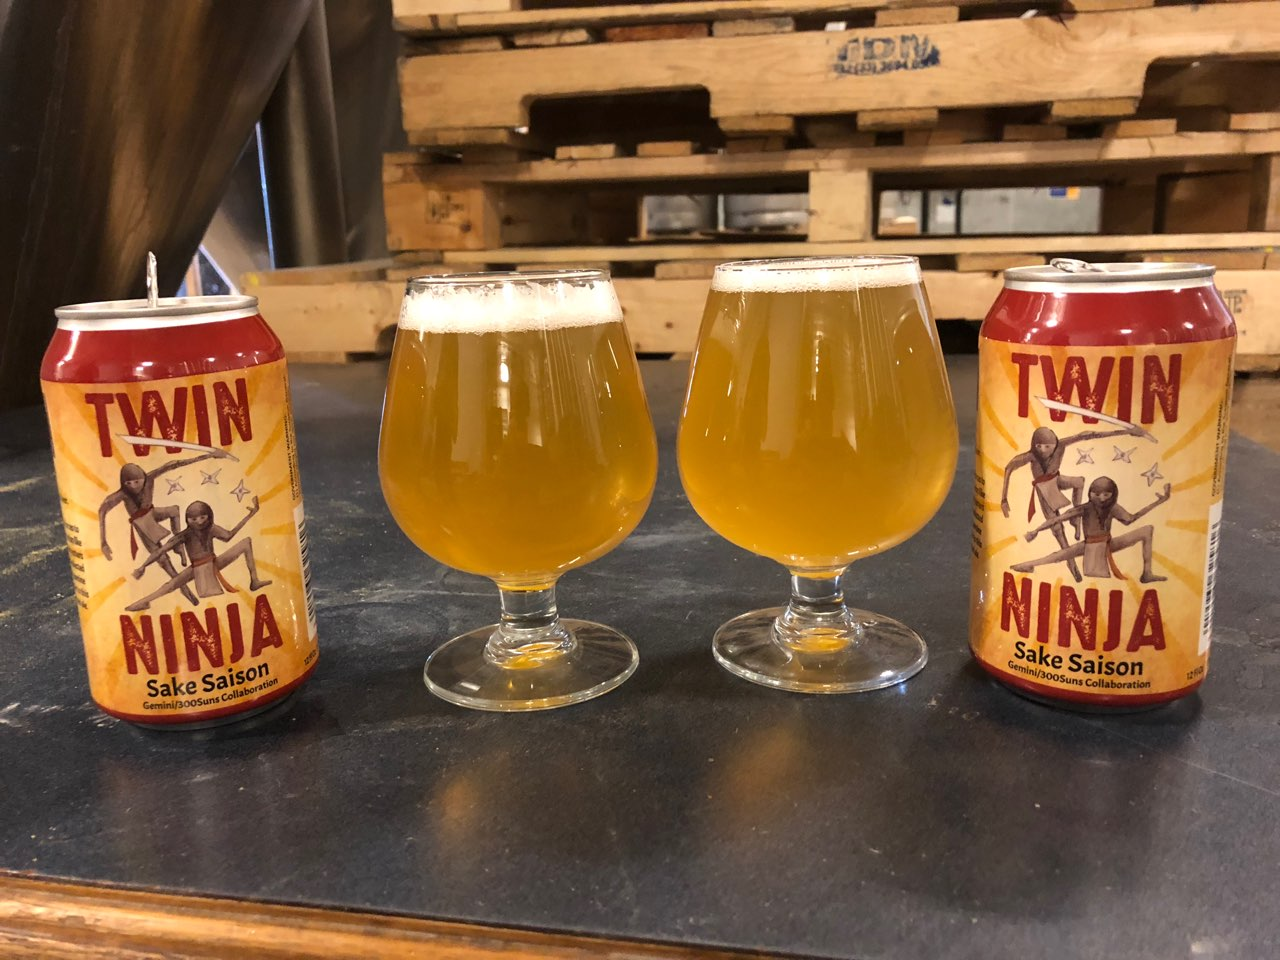 Twin Ninja Sake Saison Release March 2018 | 300 Suns Brewing